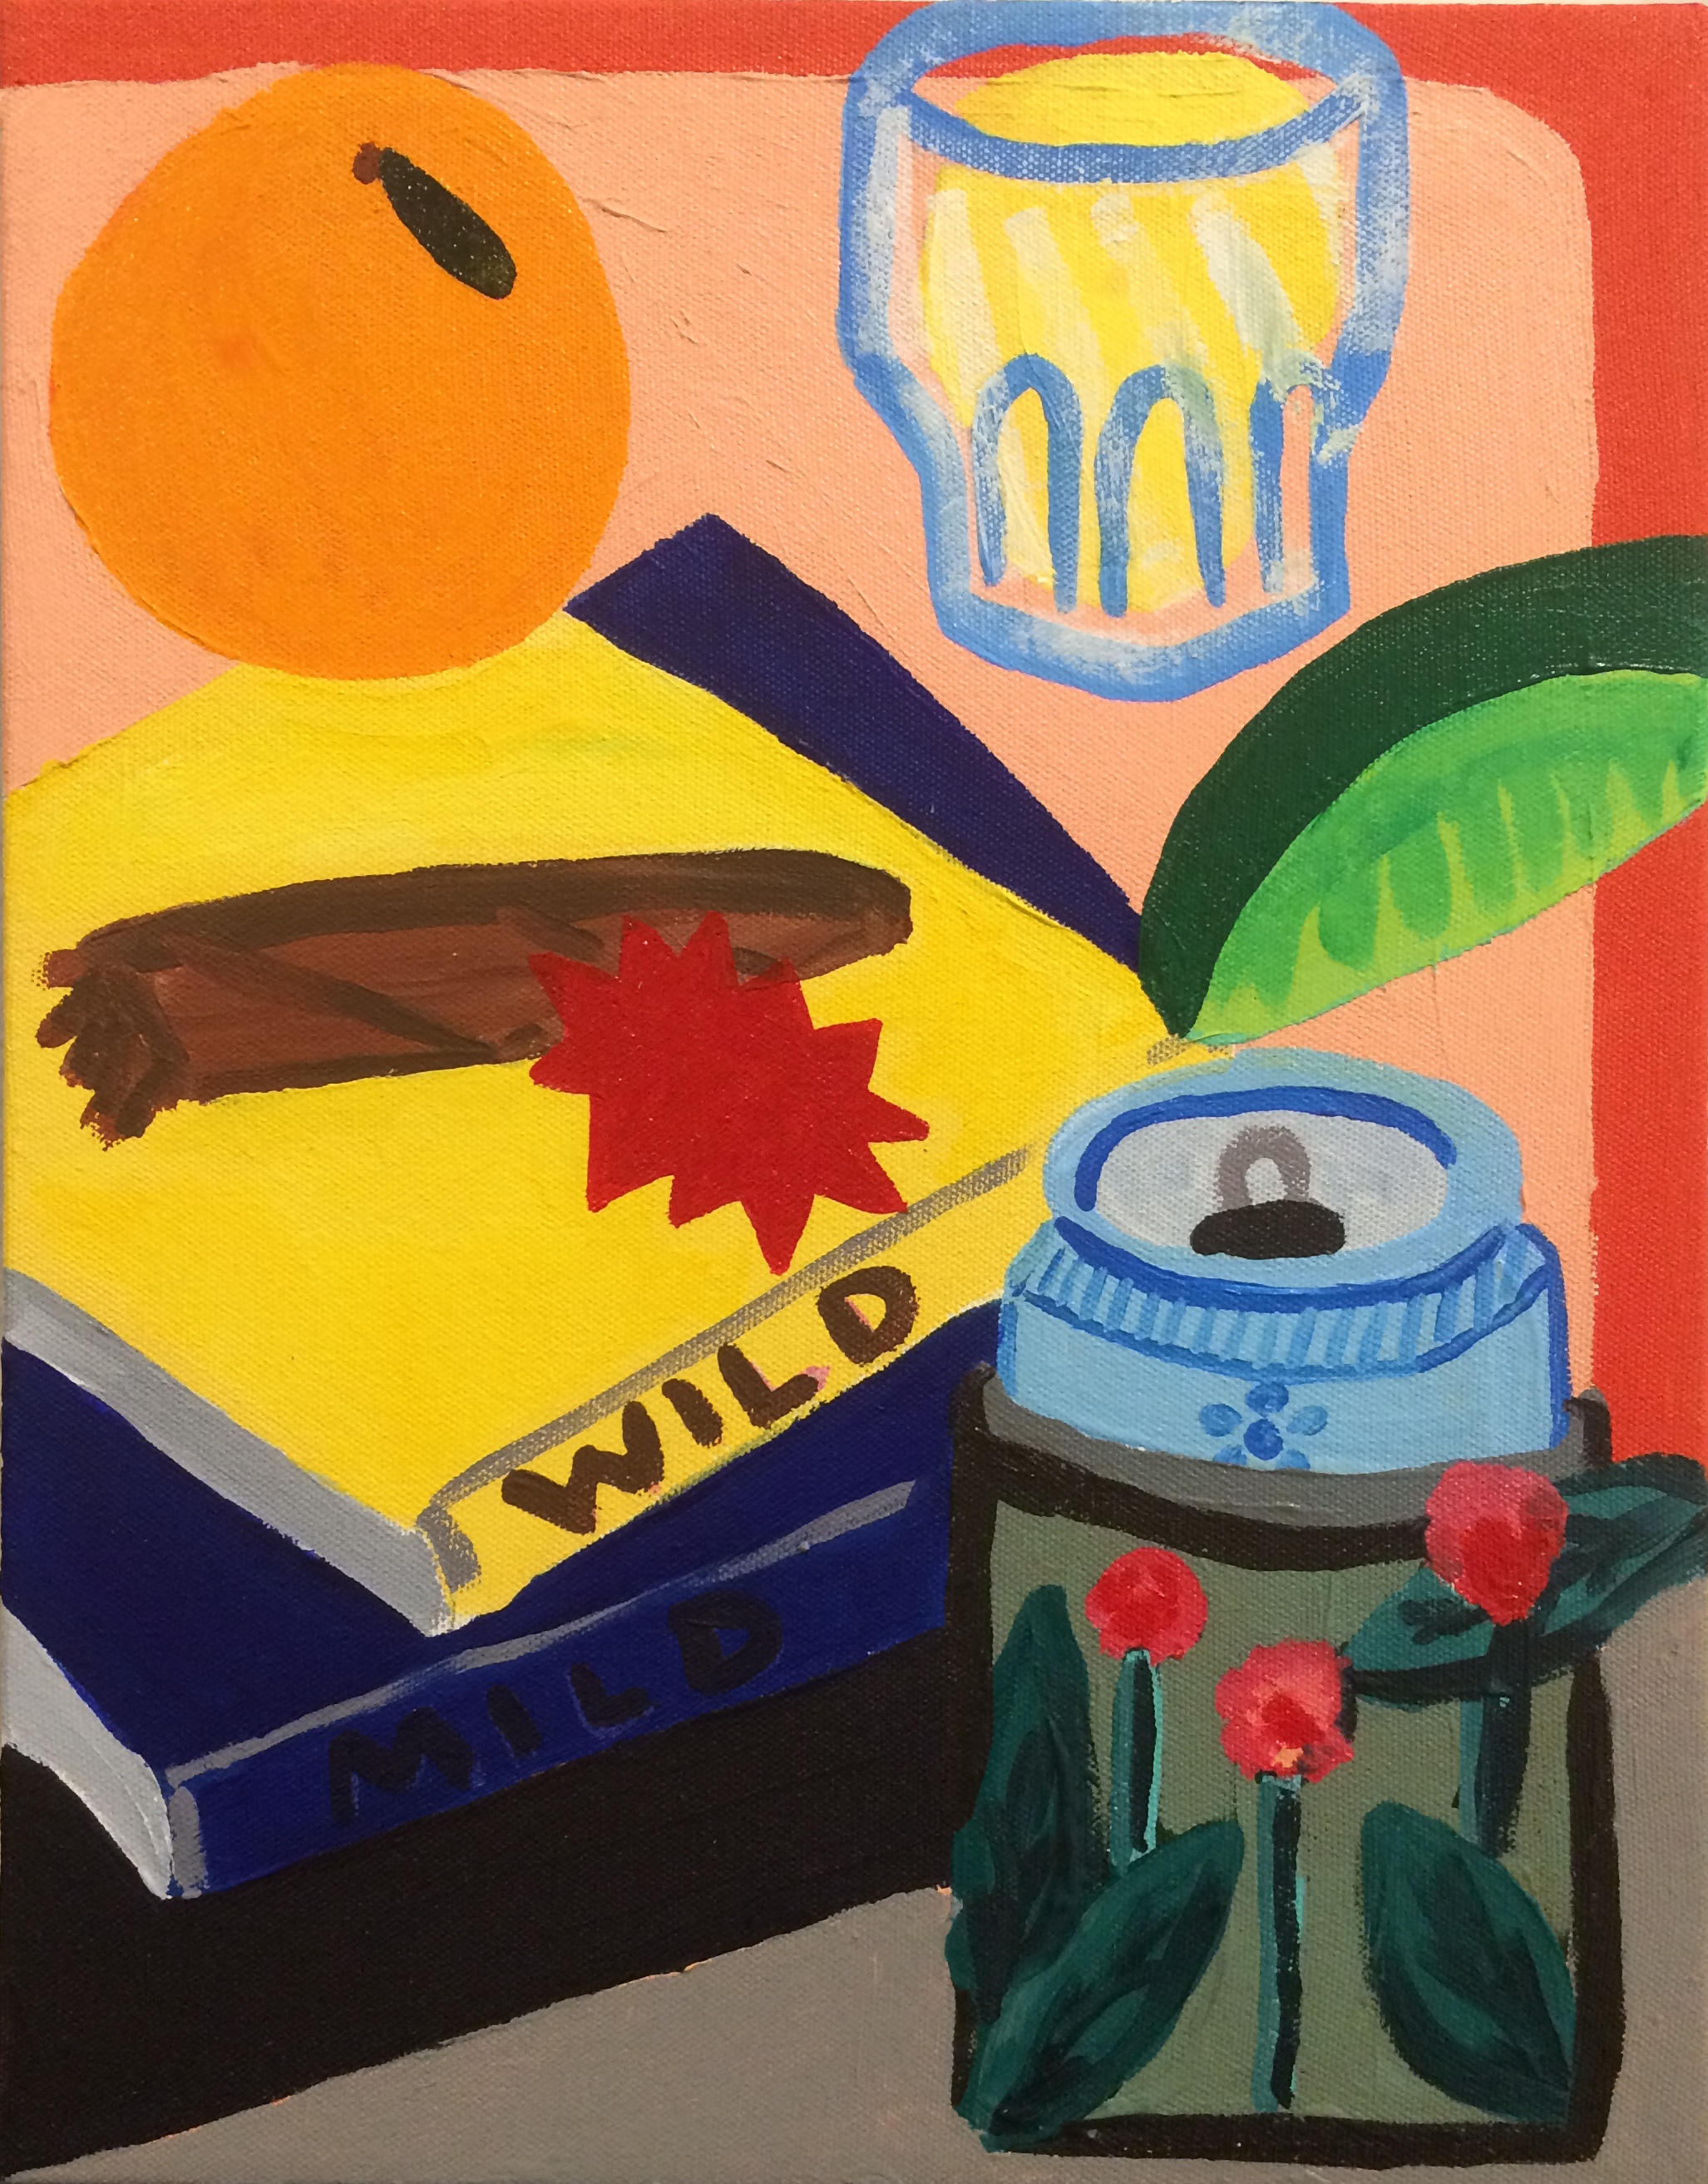 Nate Friedman / Still Life / 2018 / Acrylic on canvas / 14 x 11 inches